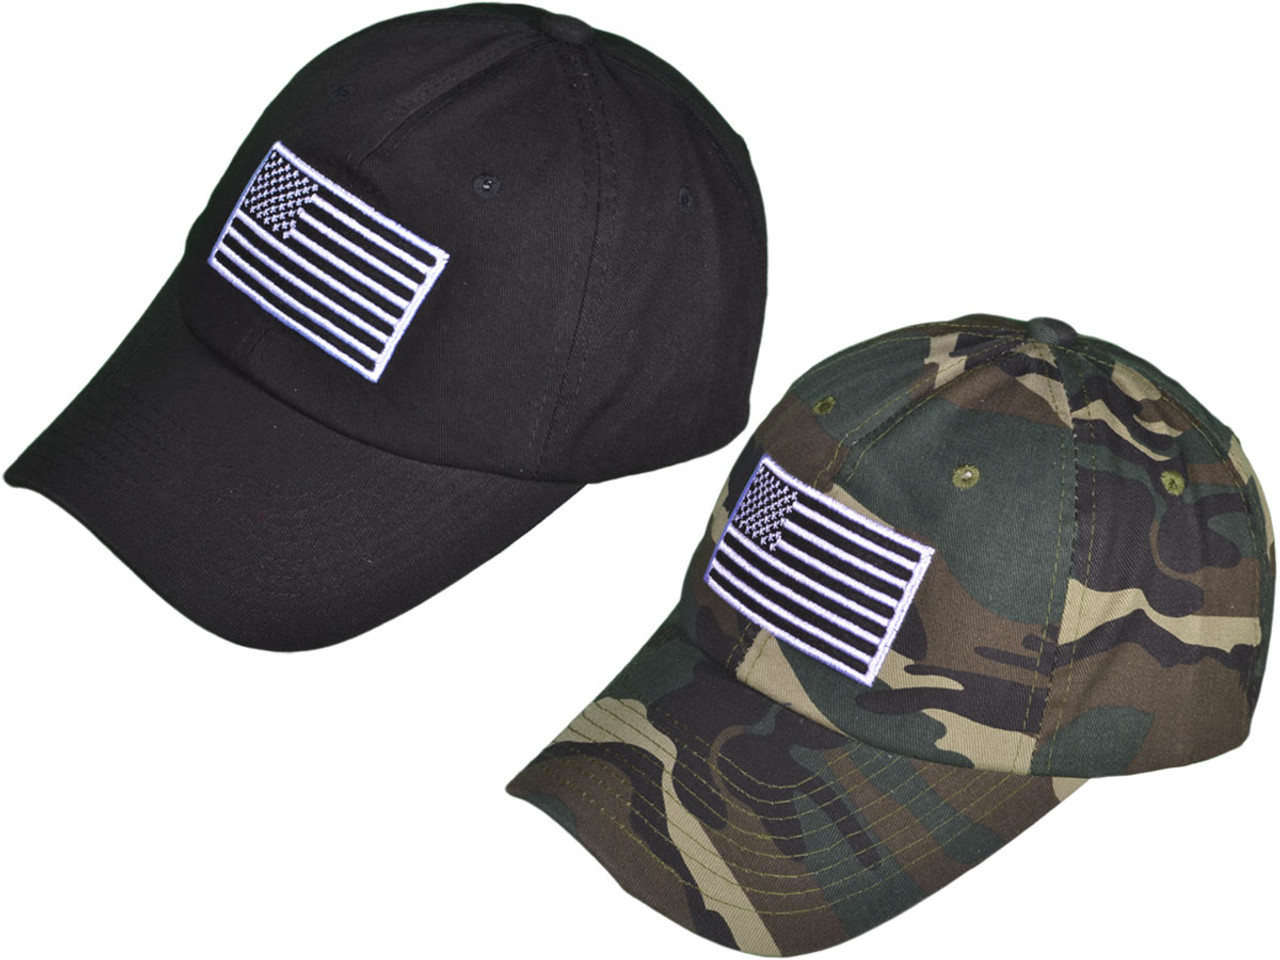 Wholesale Patriotic Dad Hats - 6 Panel Unstructured Cotton Twill USA ... 1d3ed24d0b2a